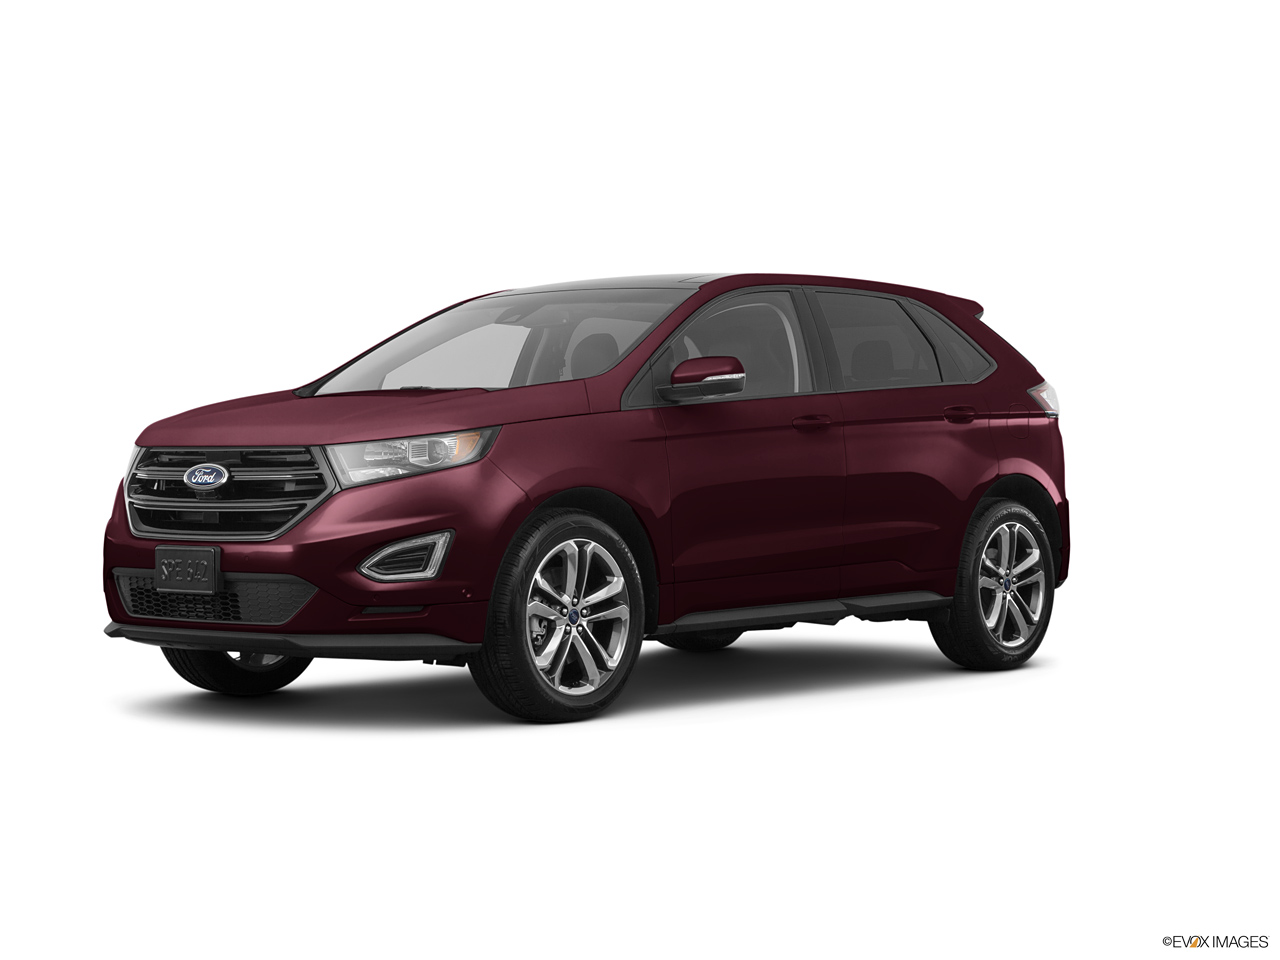 car features list for ford edge 2017 3 5l v6 se awd uae yallamotor. Black Bedroom Furniture Sets. Home Design Ideas